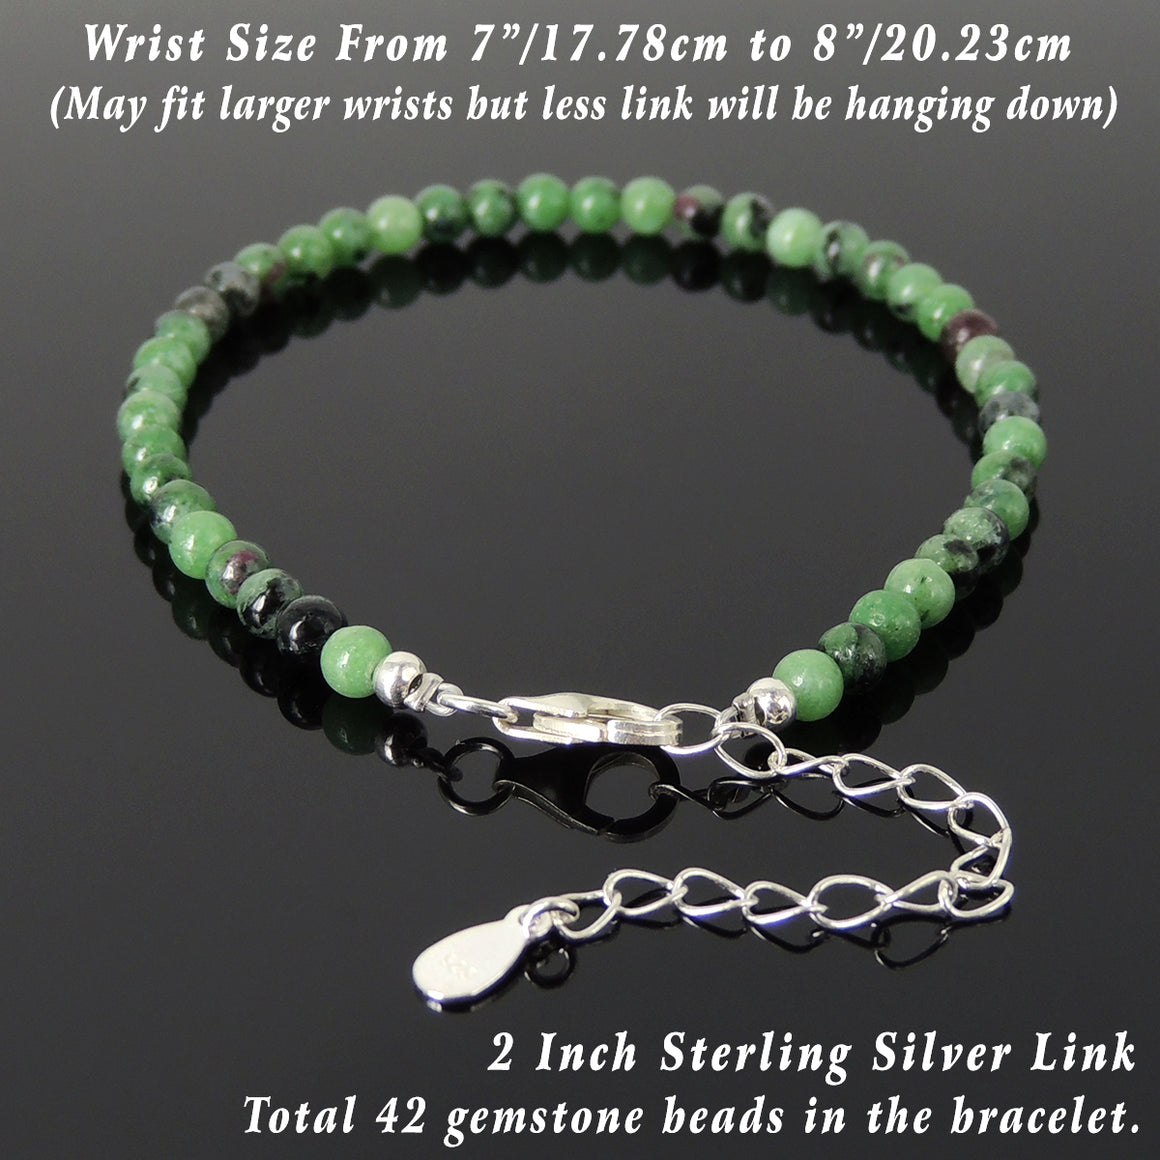 4mm Epidote Healing Gemstone Bracelet with S925 Sterling Silver Beads, Chain, & Clasp - Handmade by Gem & Silver BR1343